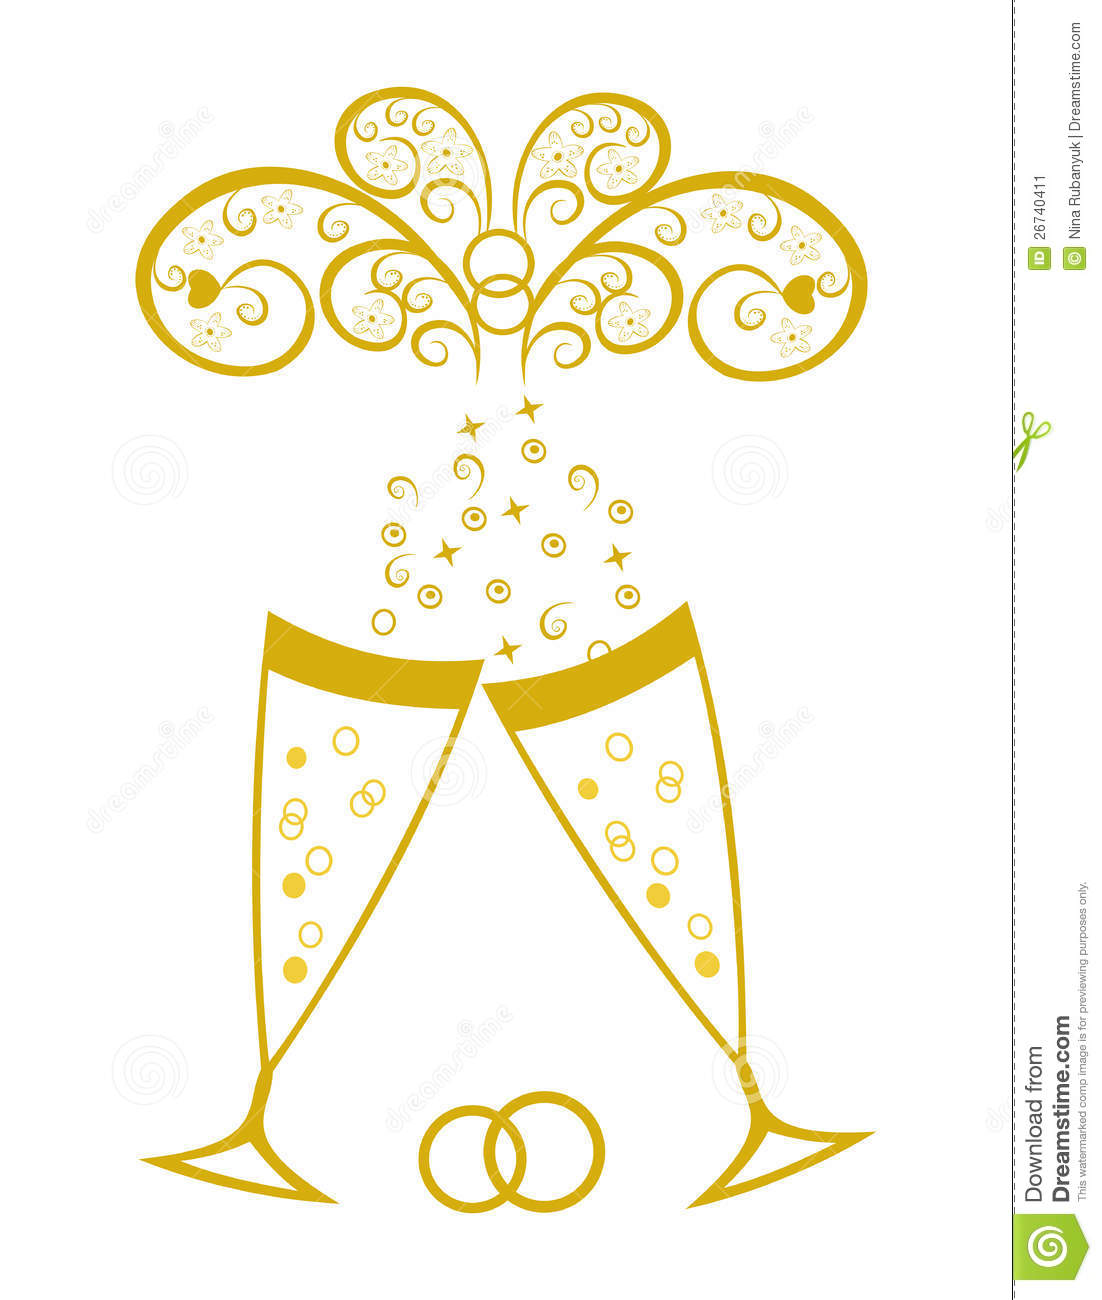 Champagne Glasses.Golden Wedding Celebration Stock Vector - Illustration of celebration ...